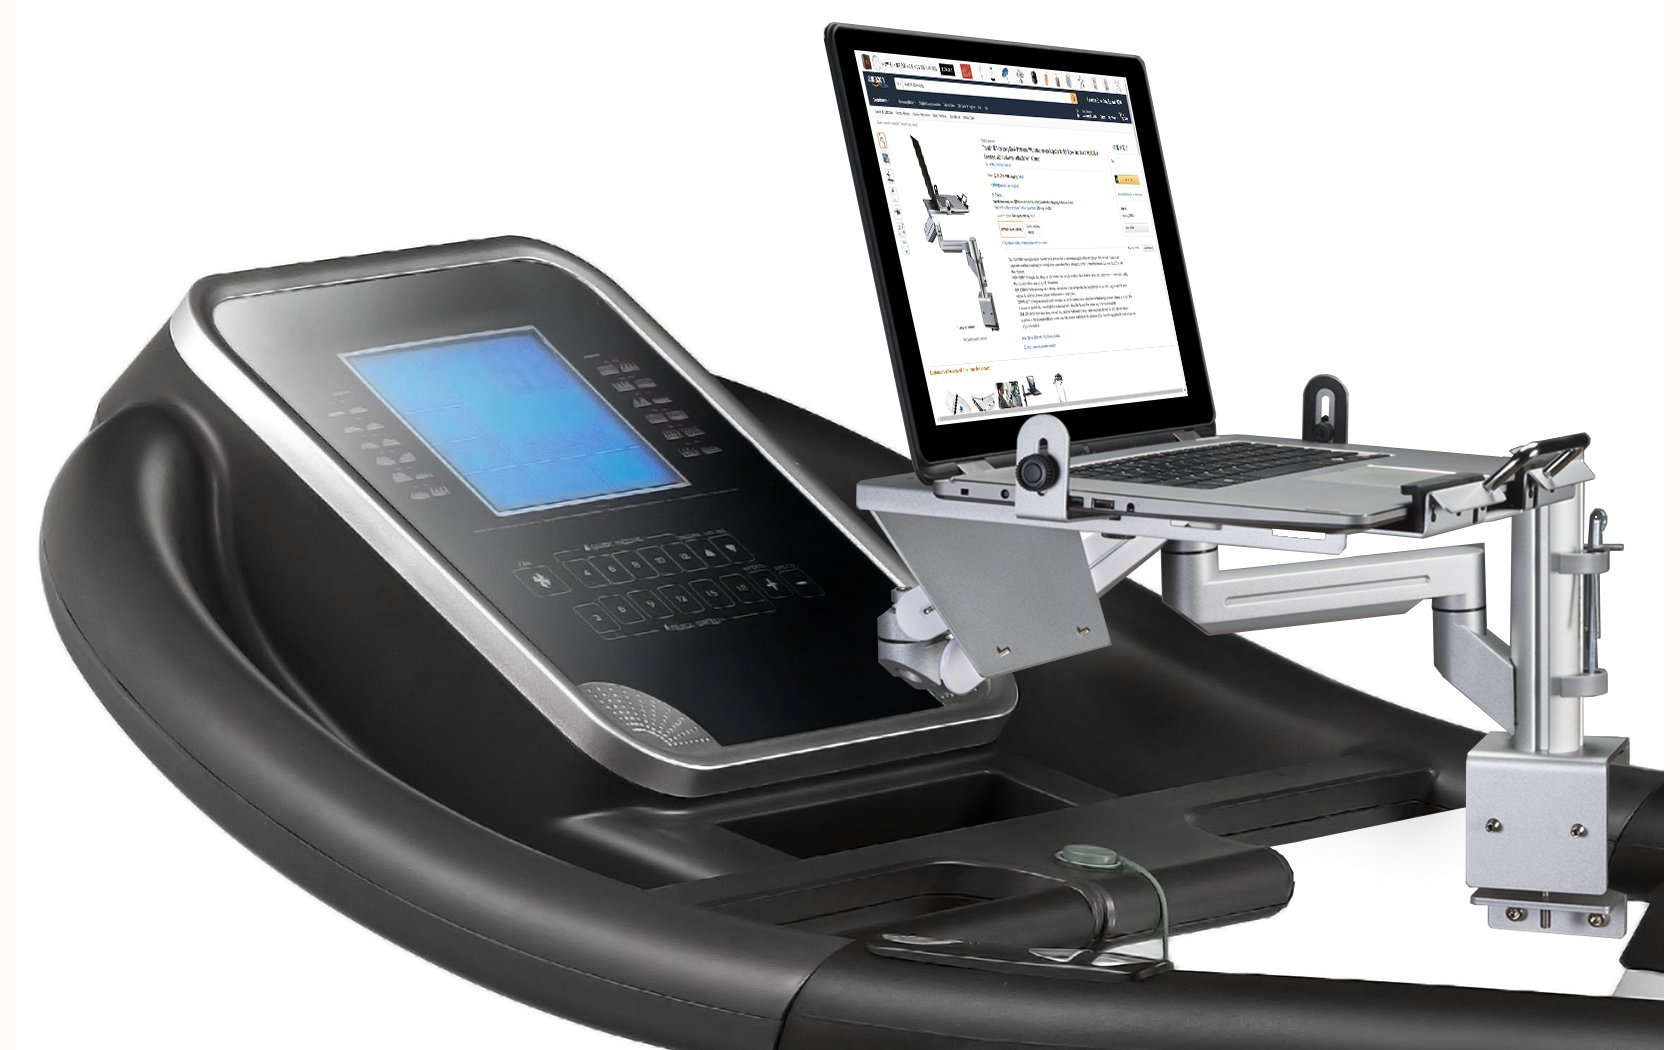 Alternative Treadmill Desk Workstation Accessory For Laptop iPad Tablet iPhone Book Walk Work or Run by Tread Experience